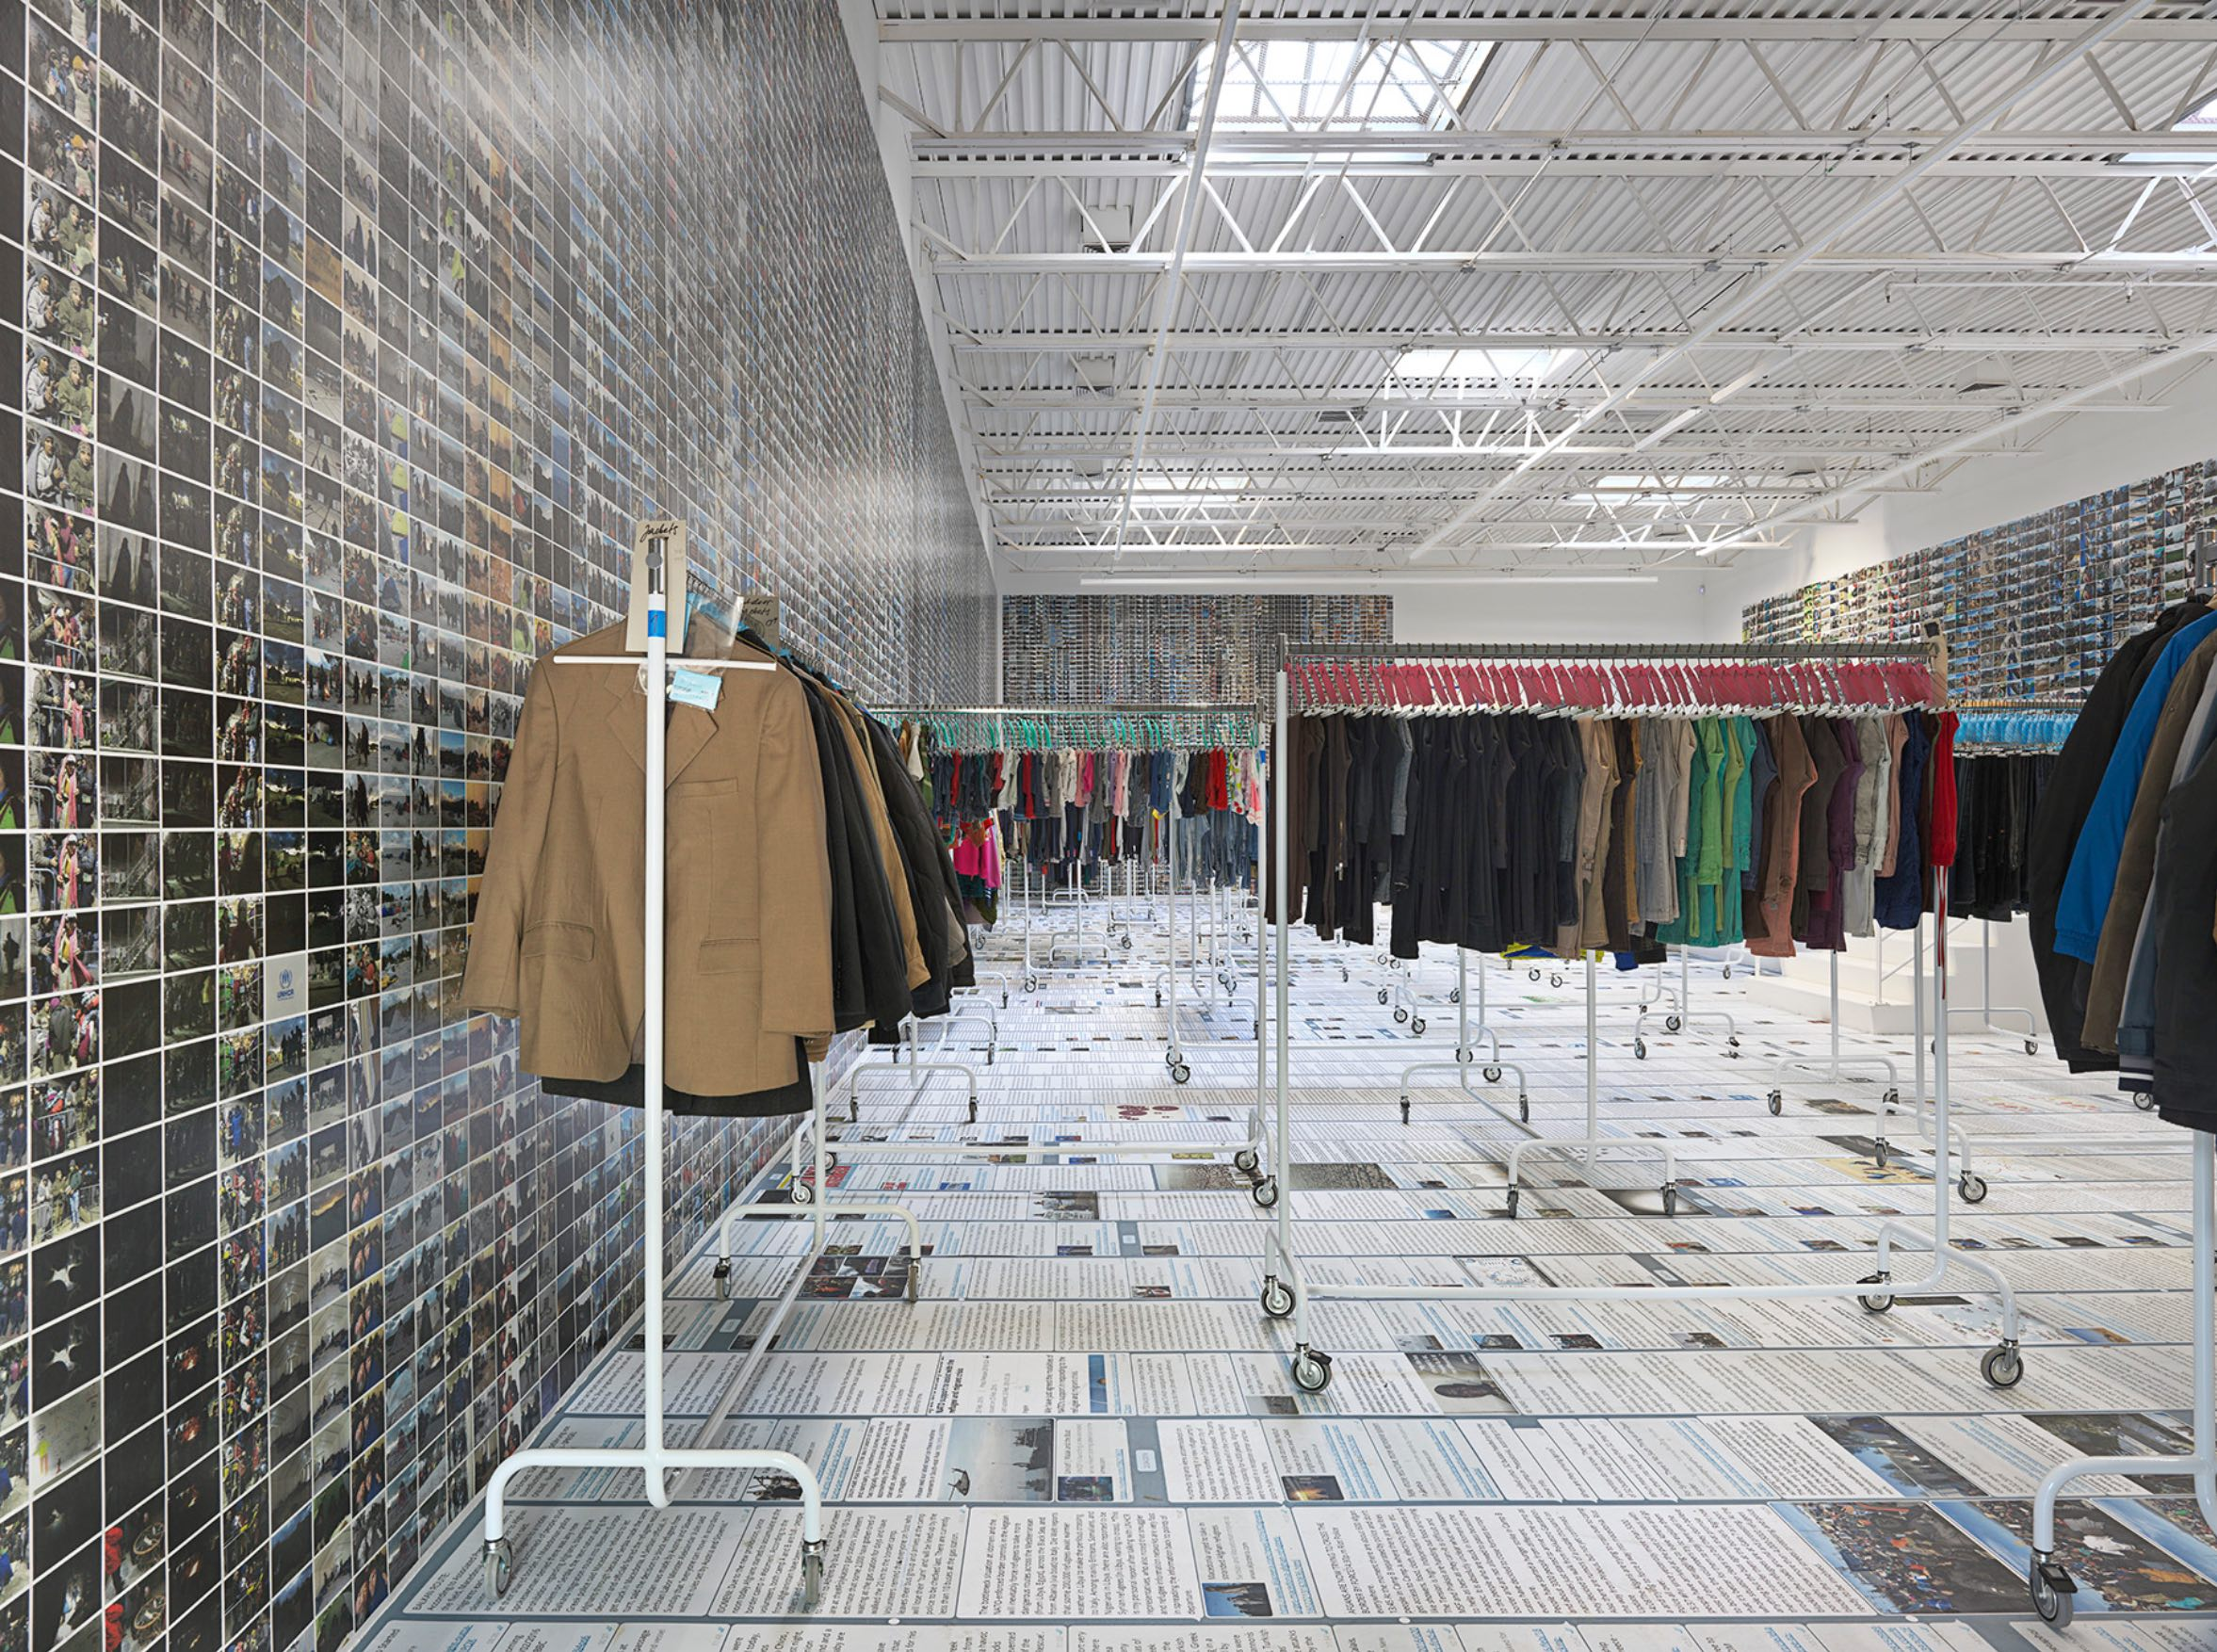 Ai Weiwei, Laundromat, Installation View at Deitch Projects, Soho. 2016. Courtesy of the artist and the gallery.